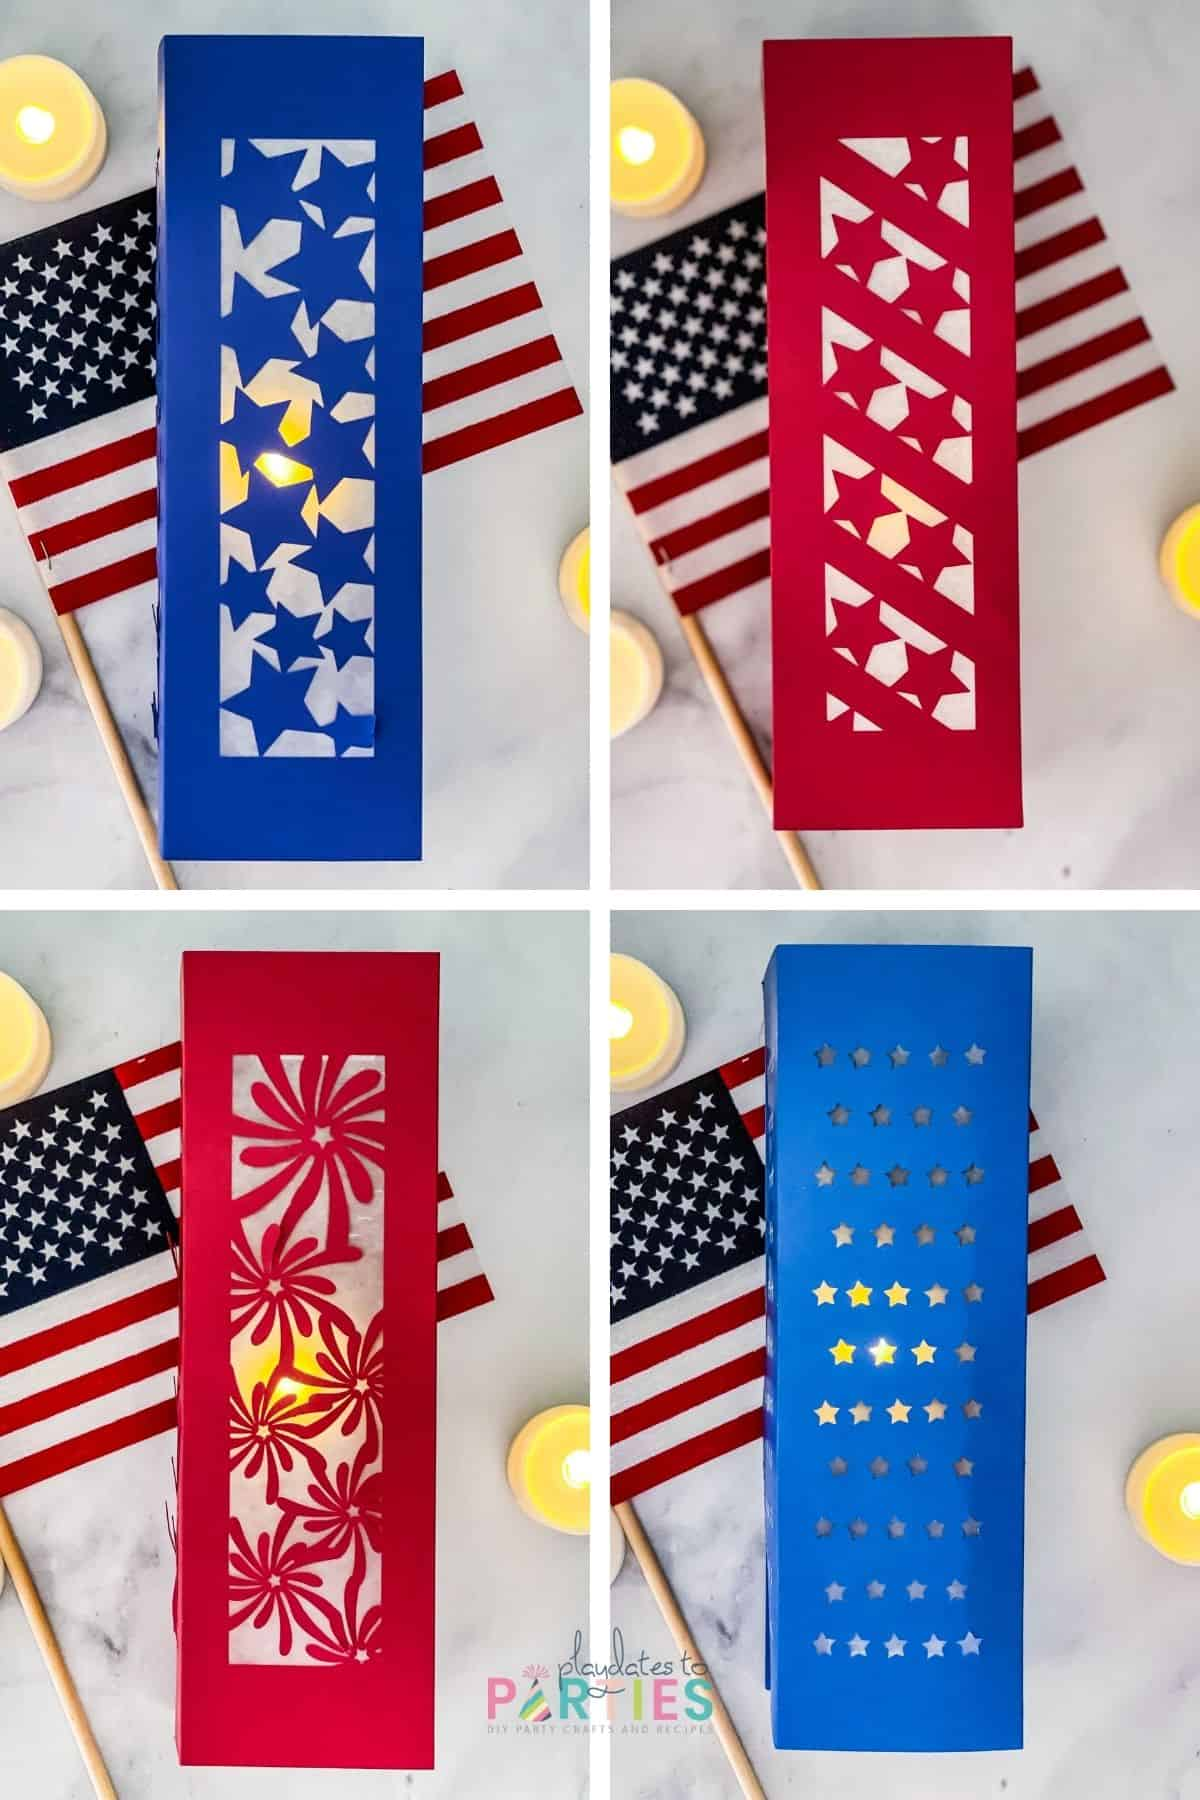 collage of four photos - each showing a different patriotic paper lantern design